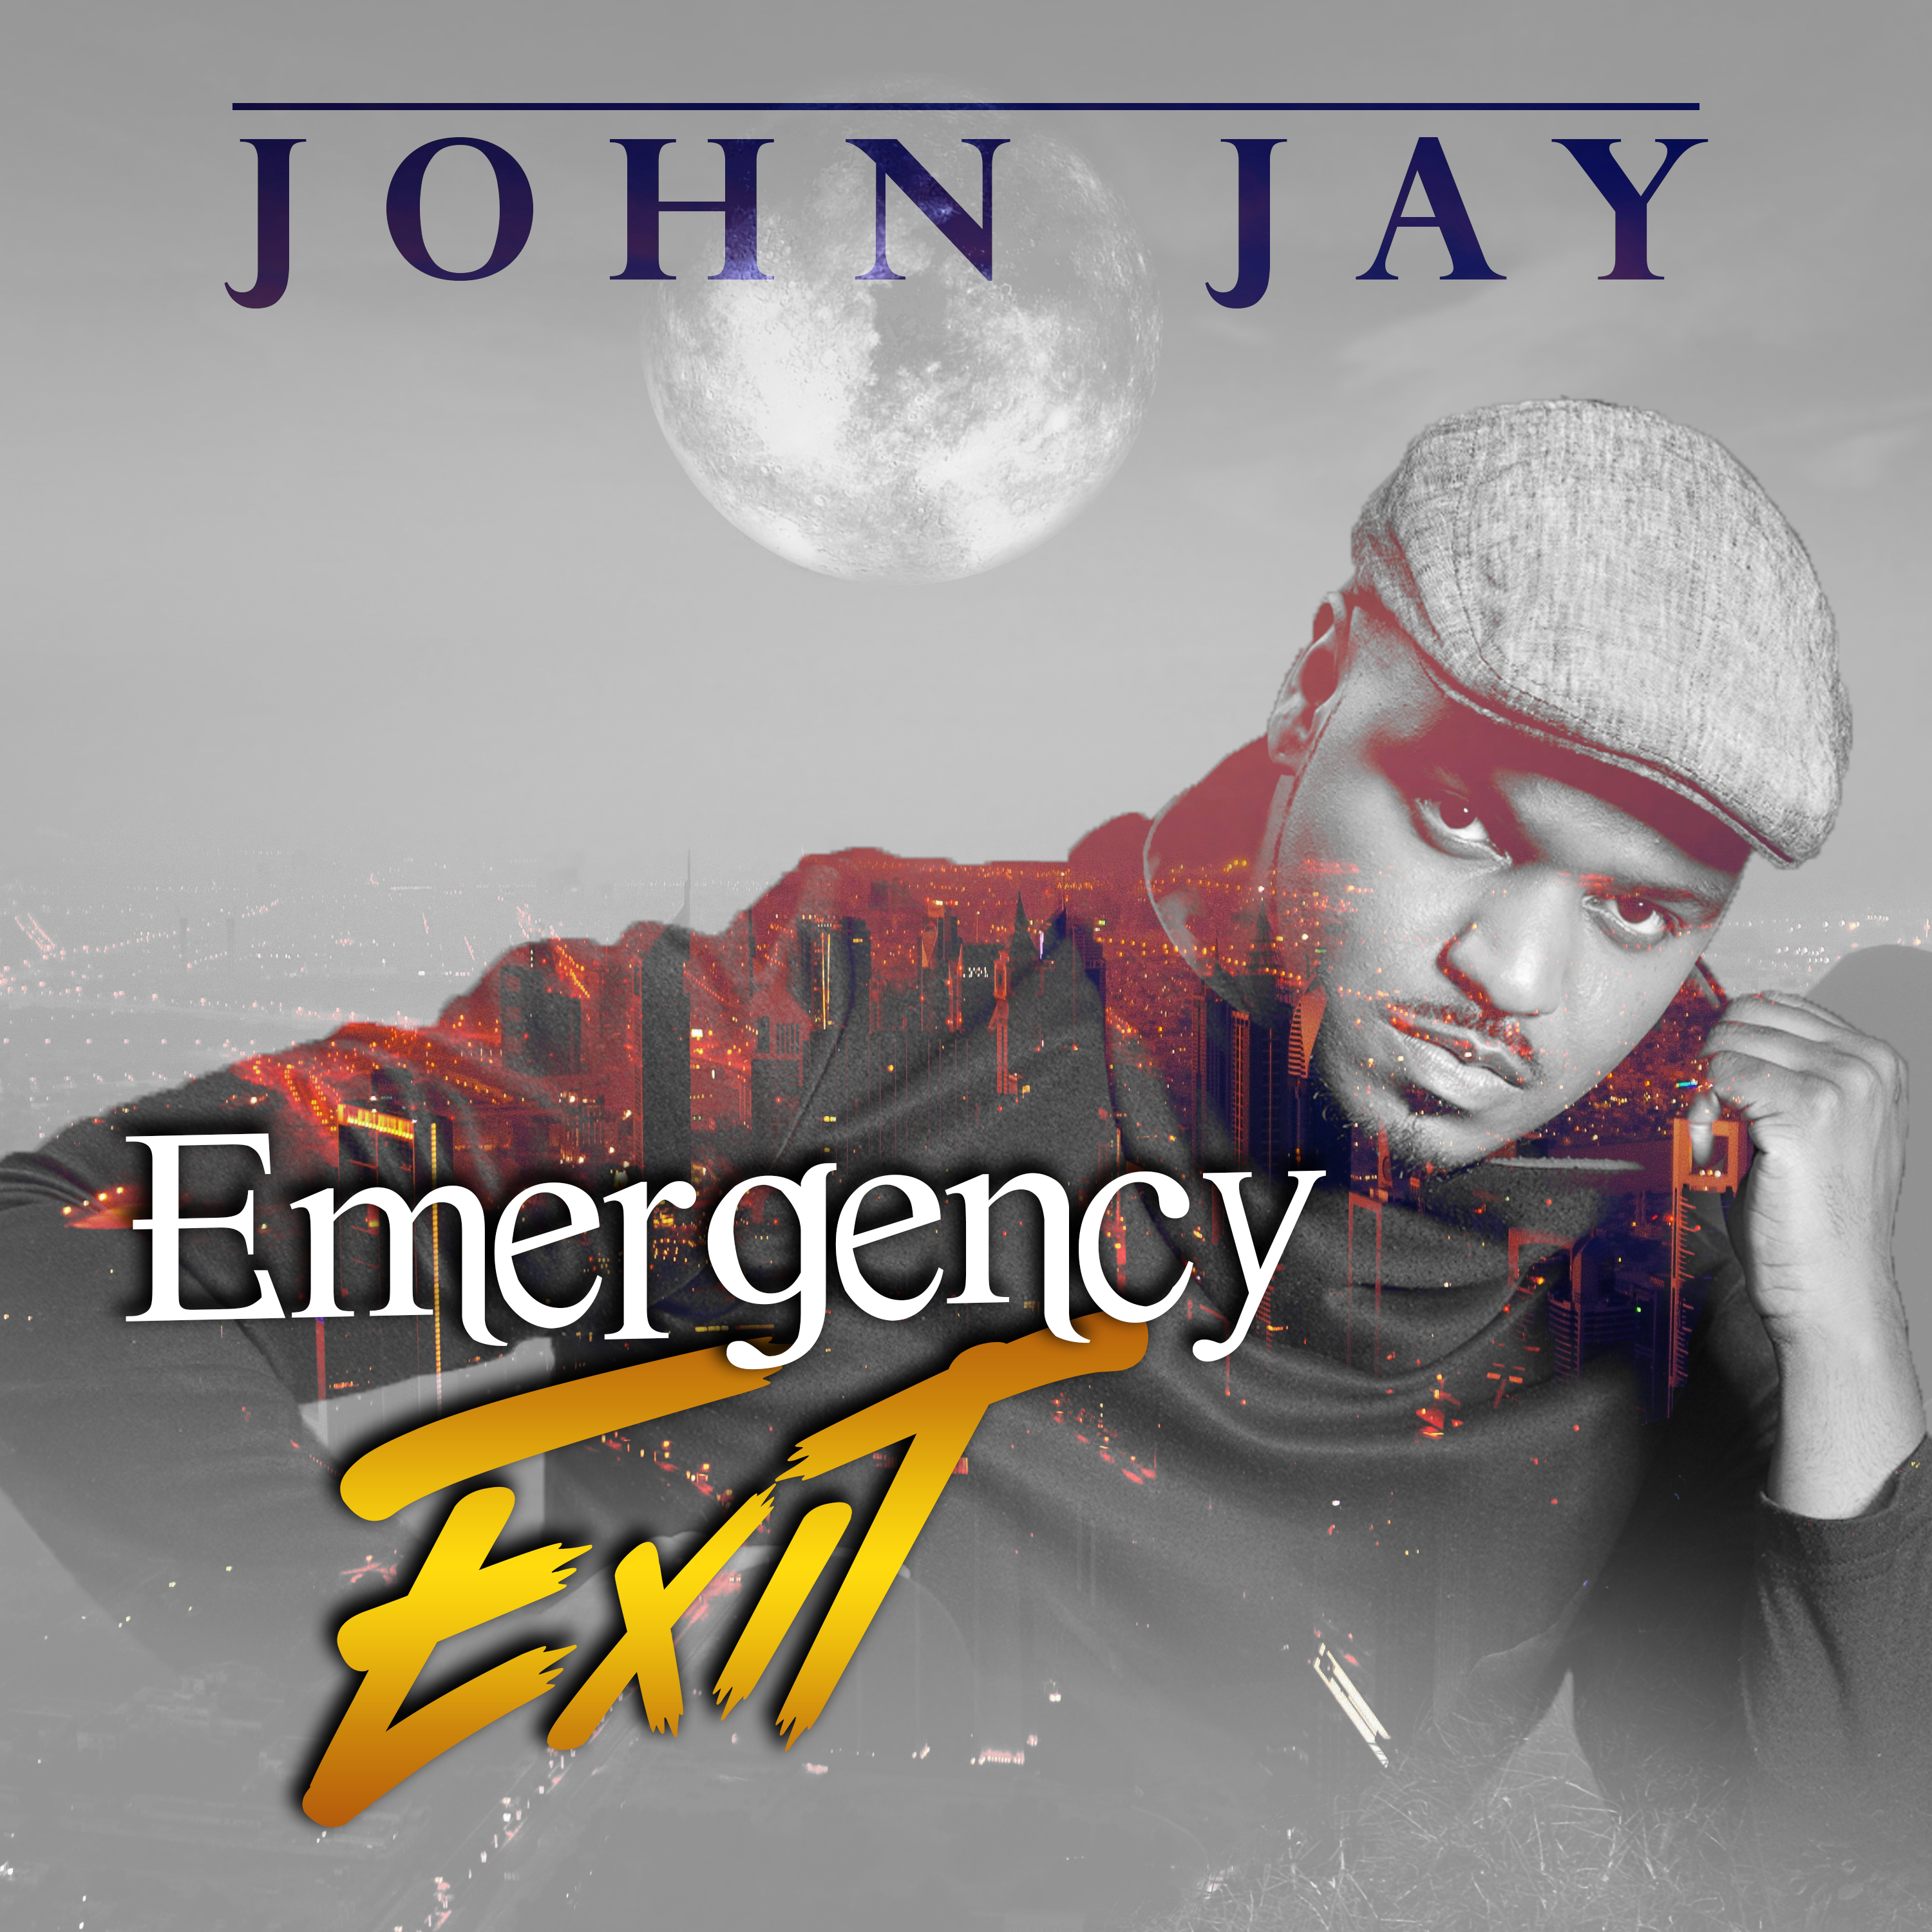 John Jay, The Gospel Musician with the Smooth Voice Announces the Release of another Soul Lifting Music Album - Emergency Exit